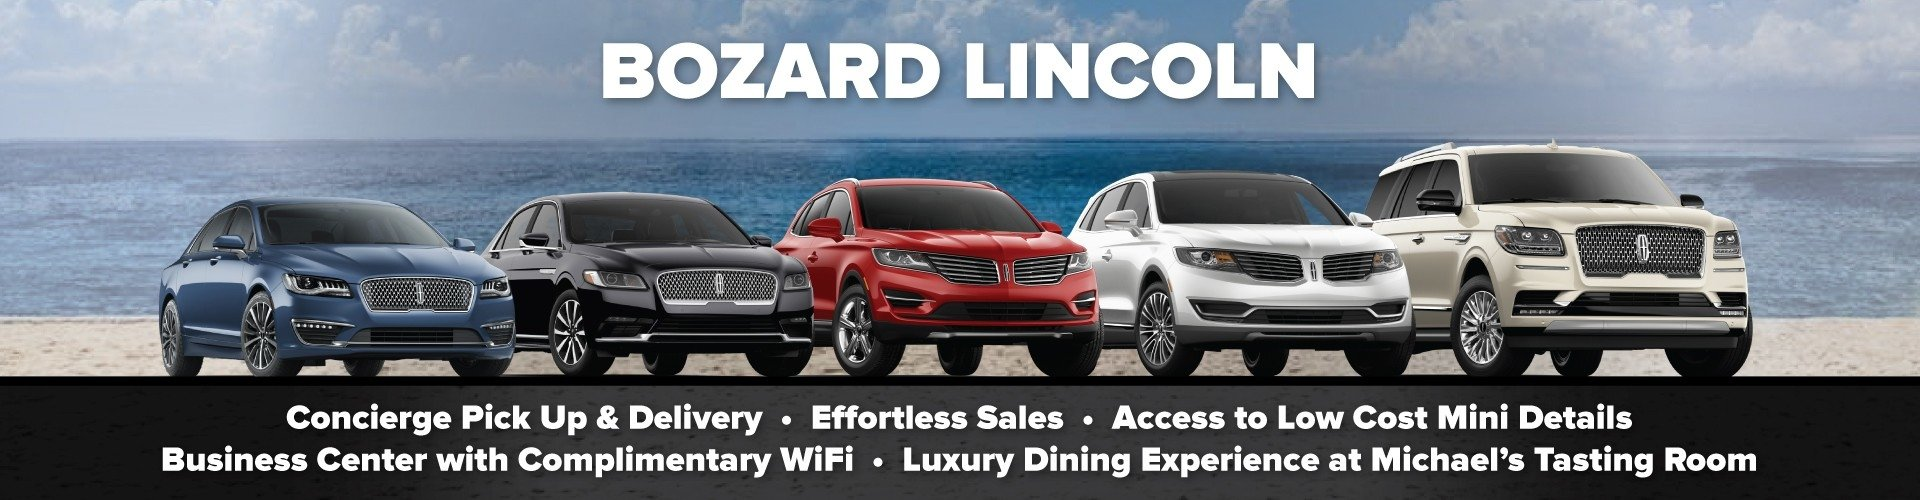 Experience Lincoln at Bozard Lincoln of St Augustine